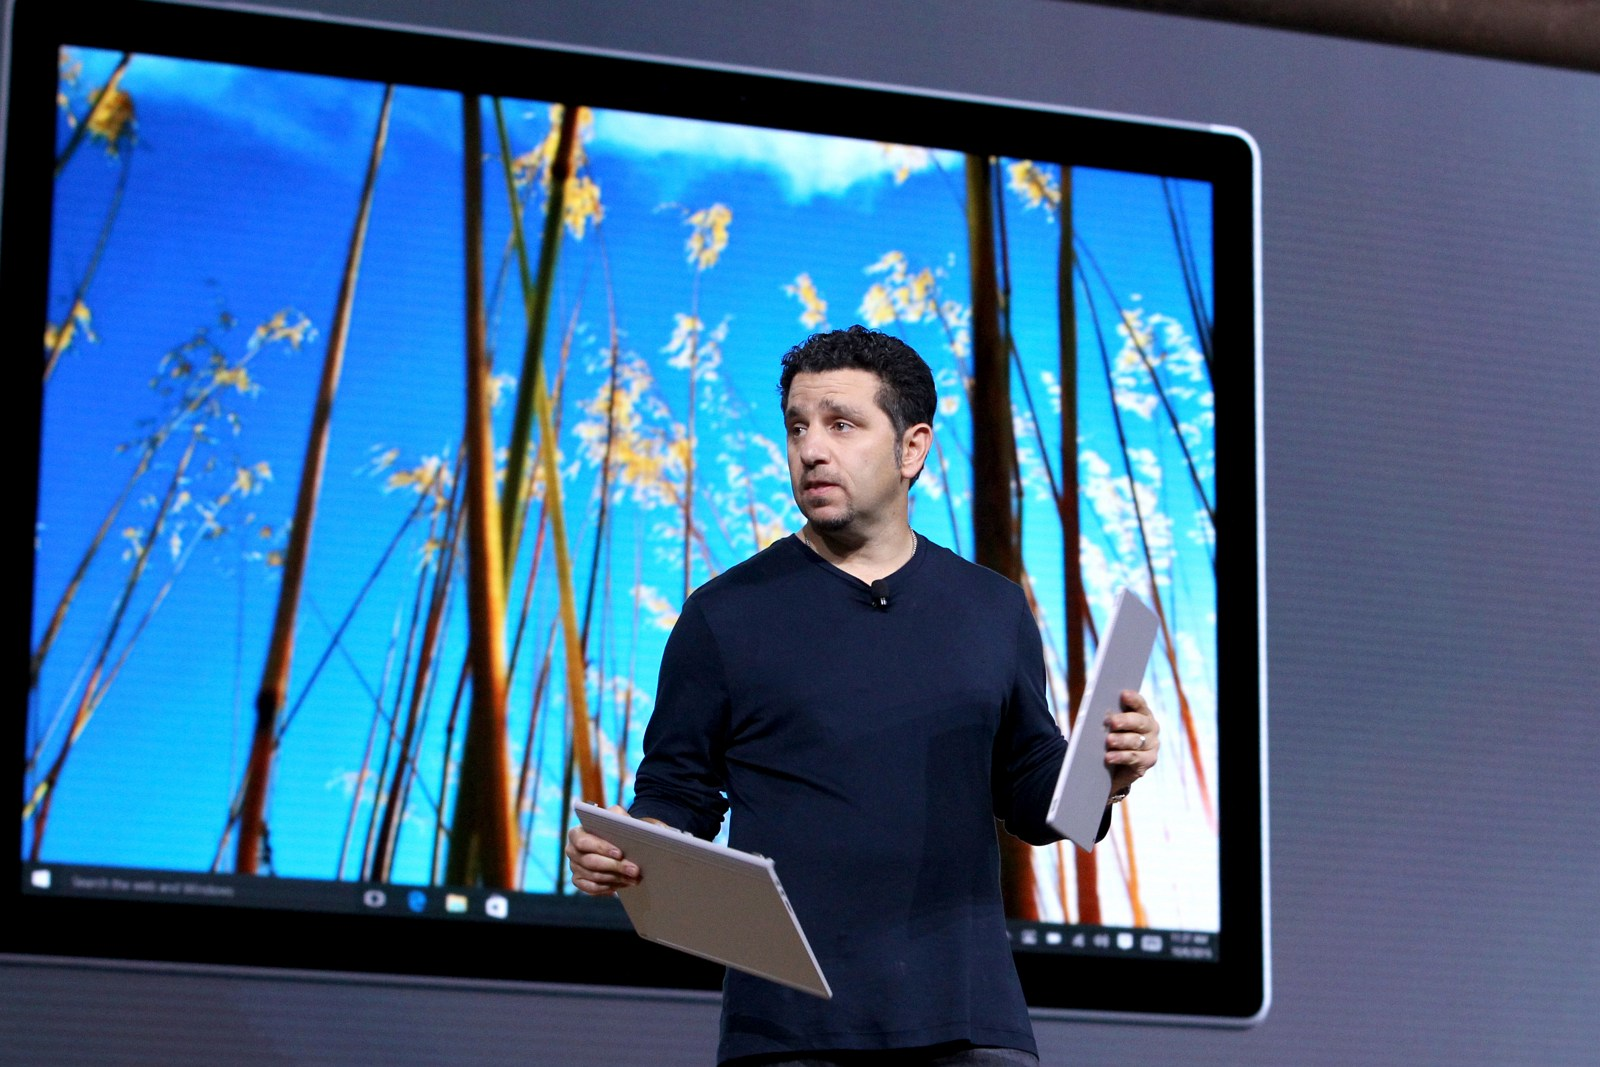 Panos Panay Surface and Windows 10 event (source: Microsoft)